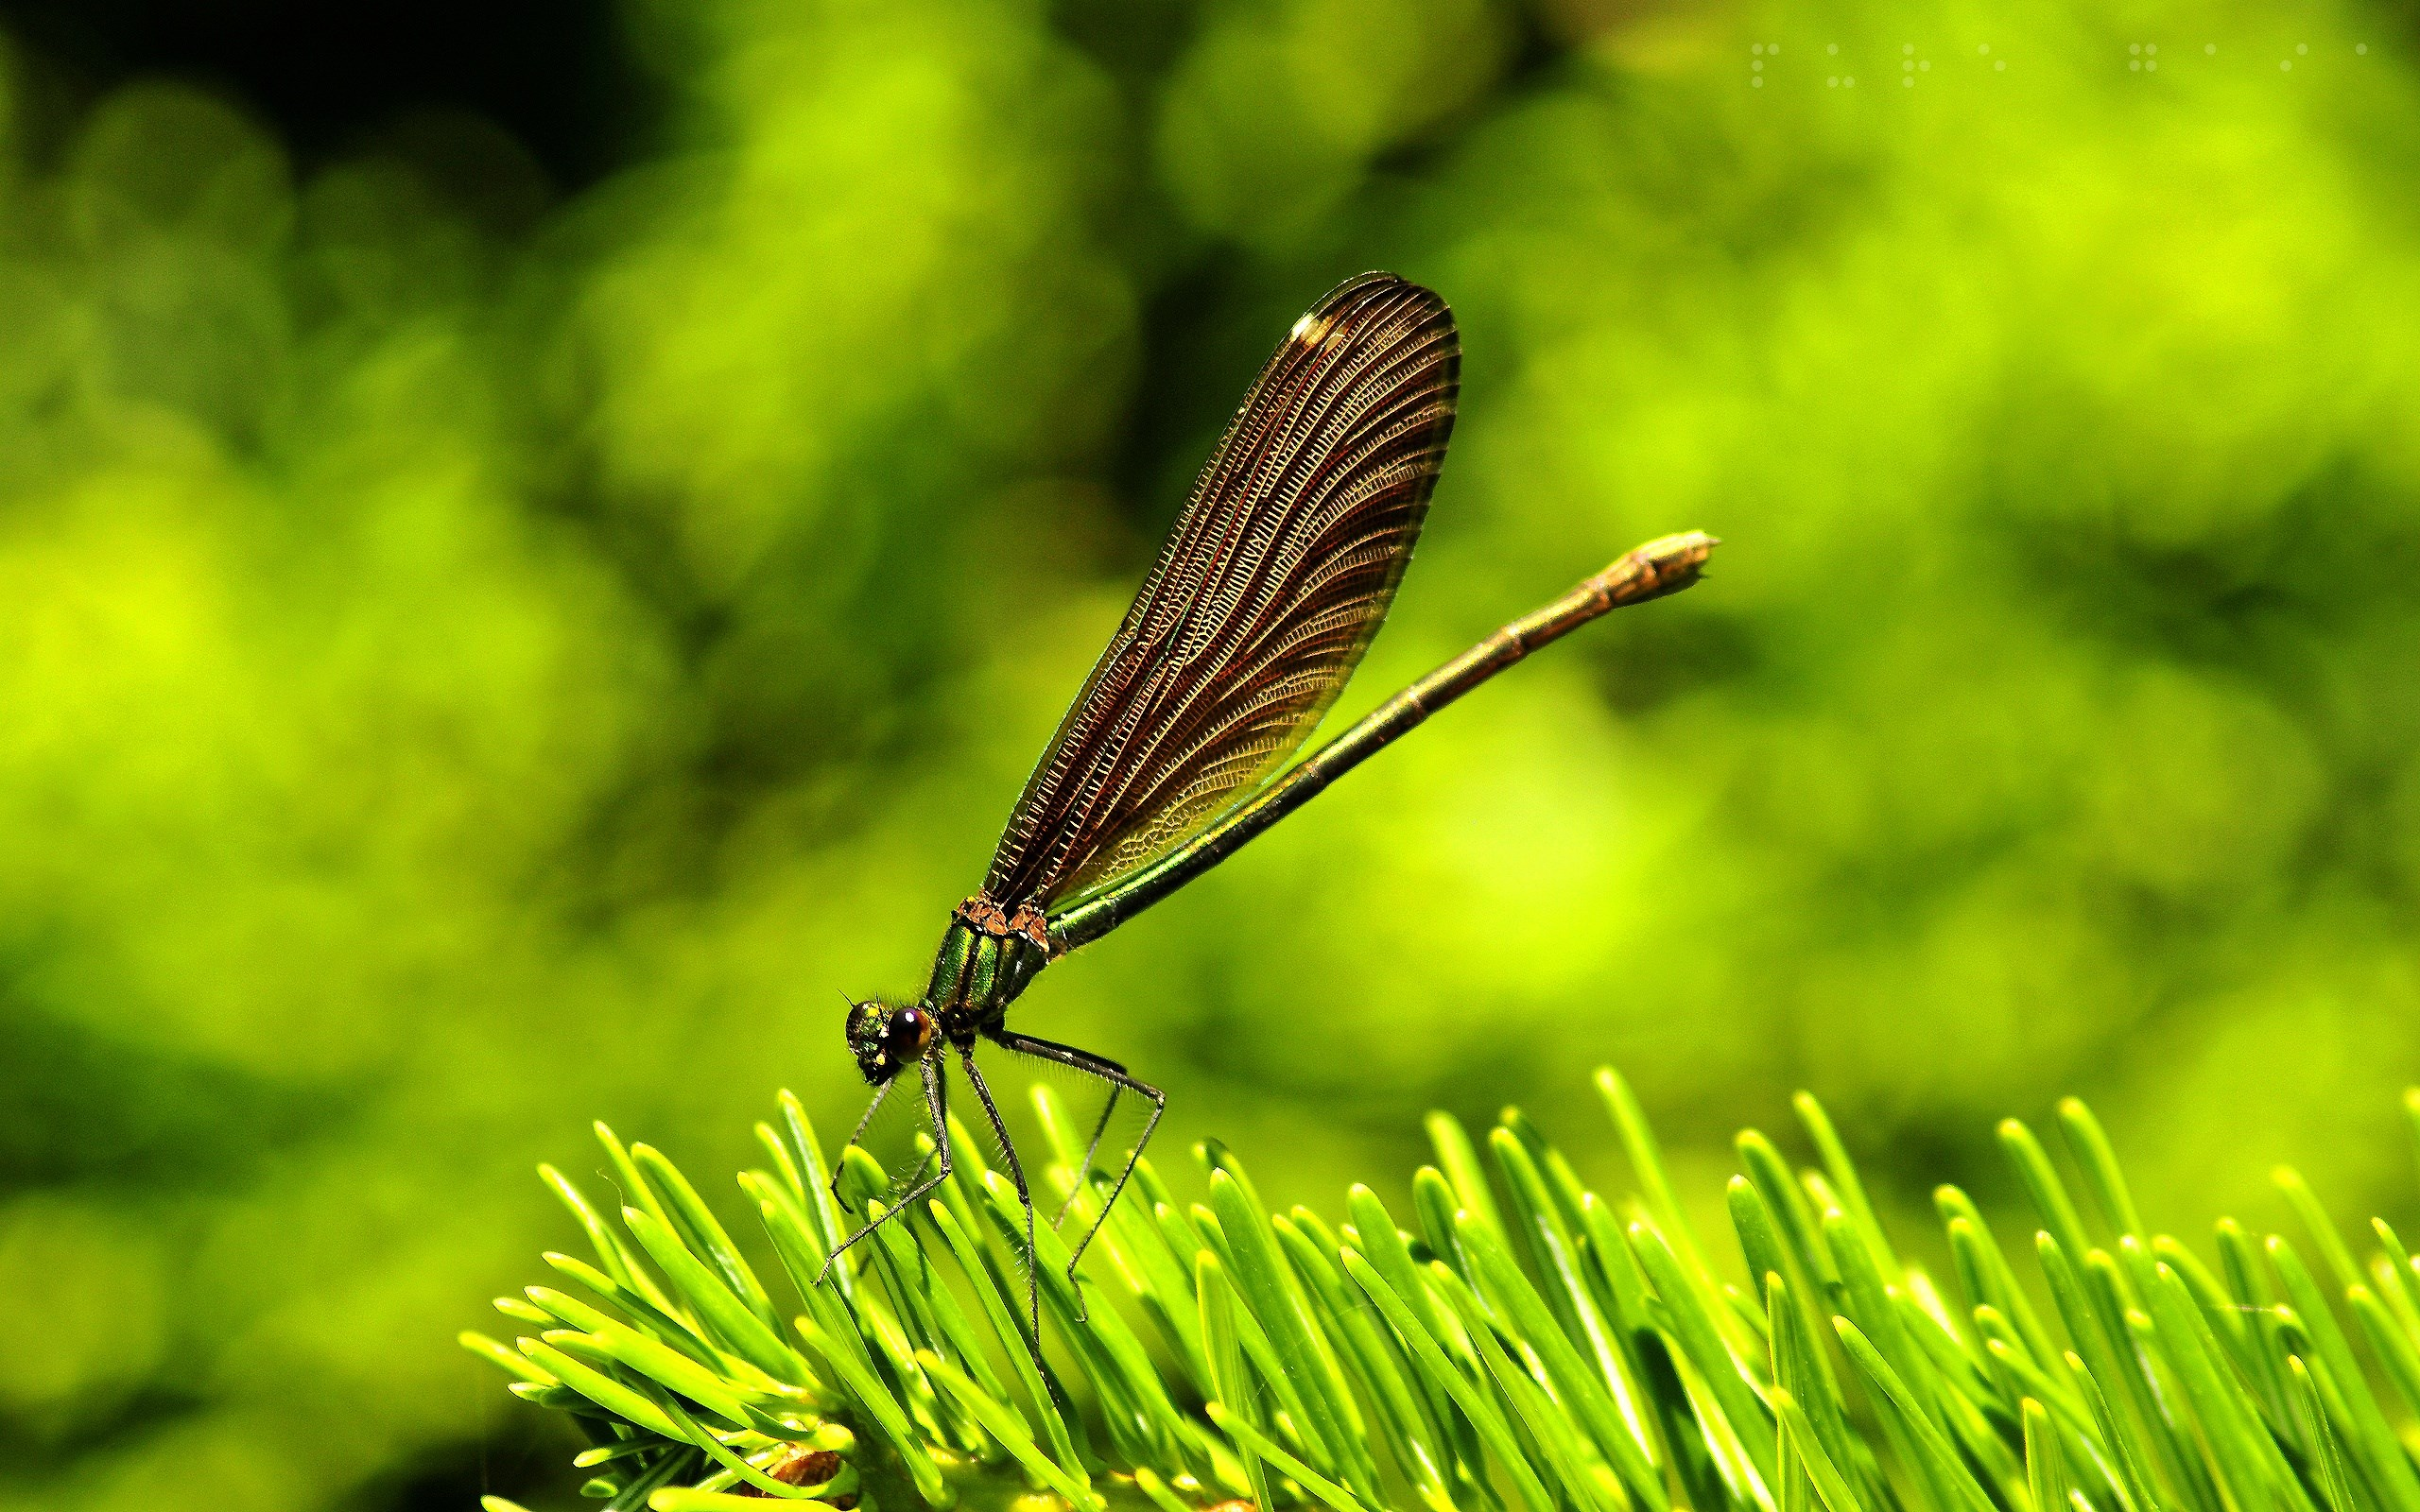 dragonfly-backround-1080p-windows-Dryden-Sinclair-x-wallpaper-wp3804895